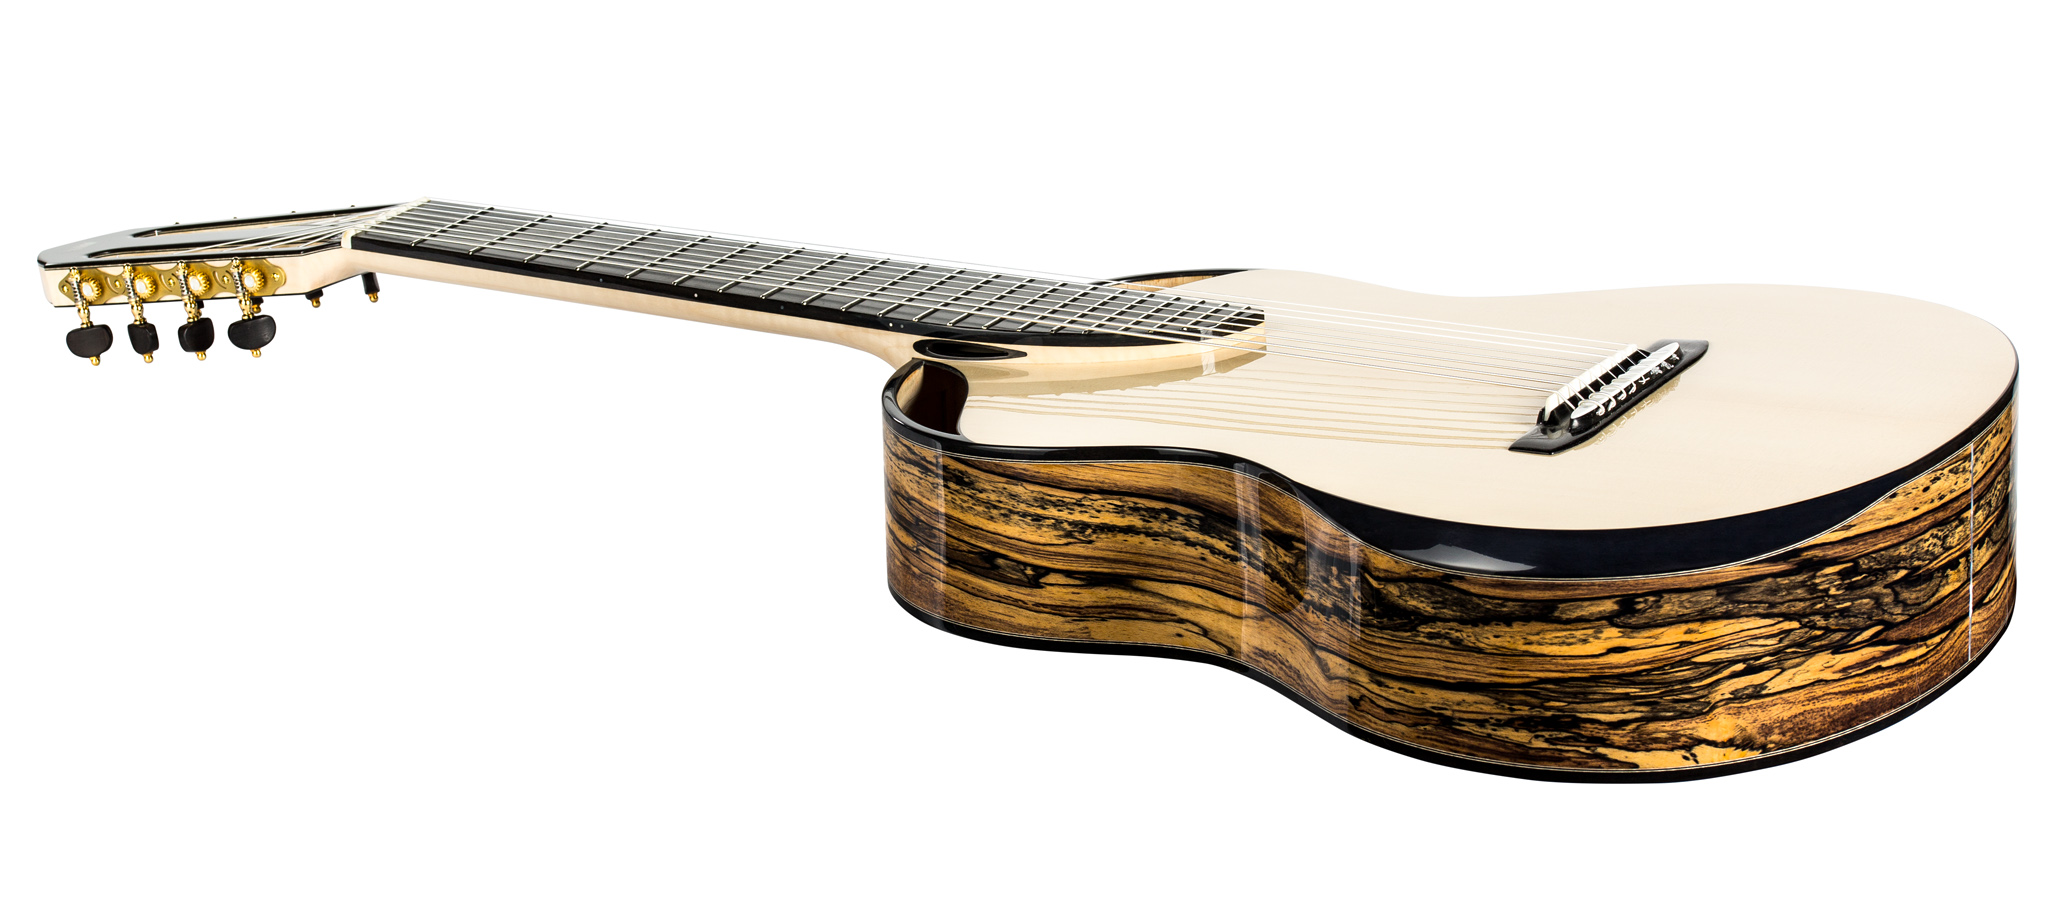 8-string classical guitar sides